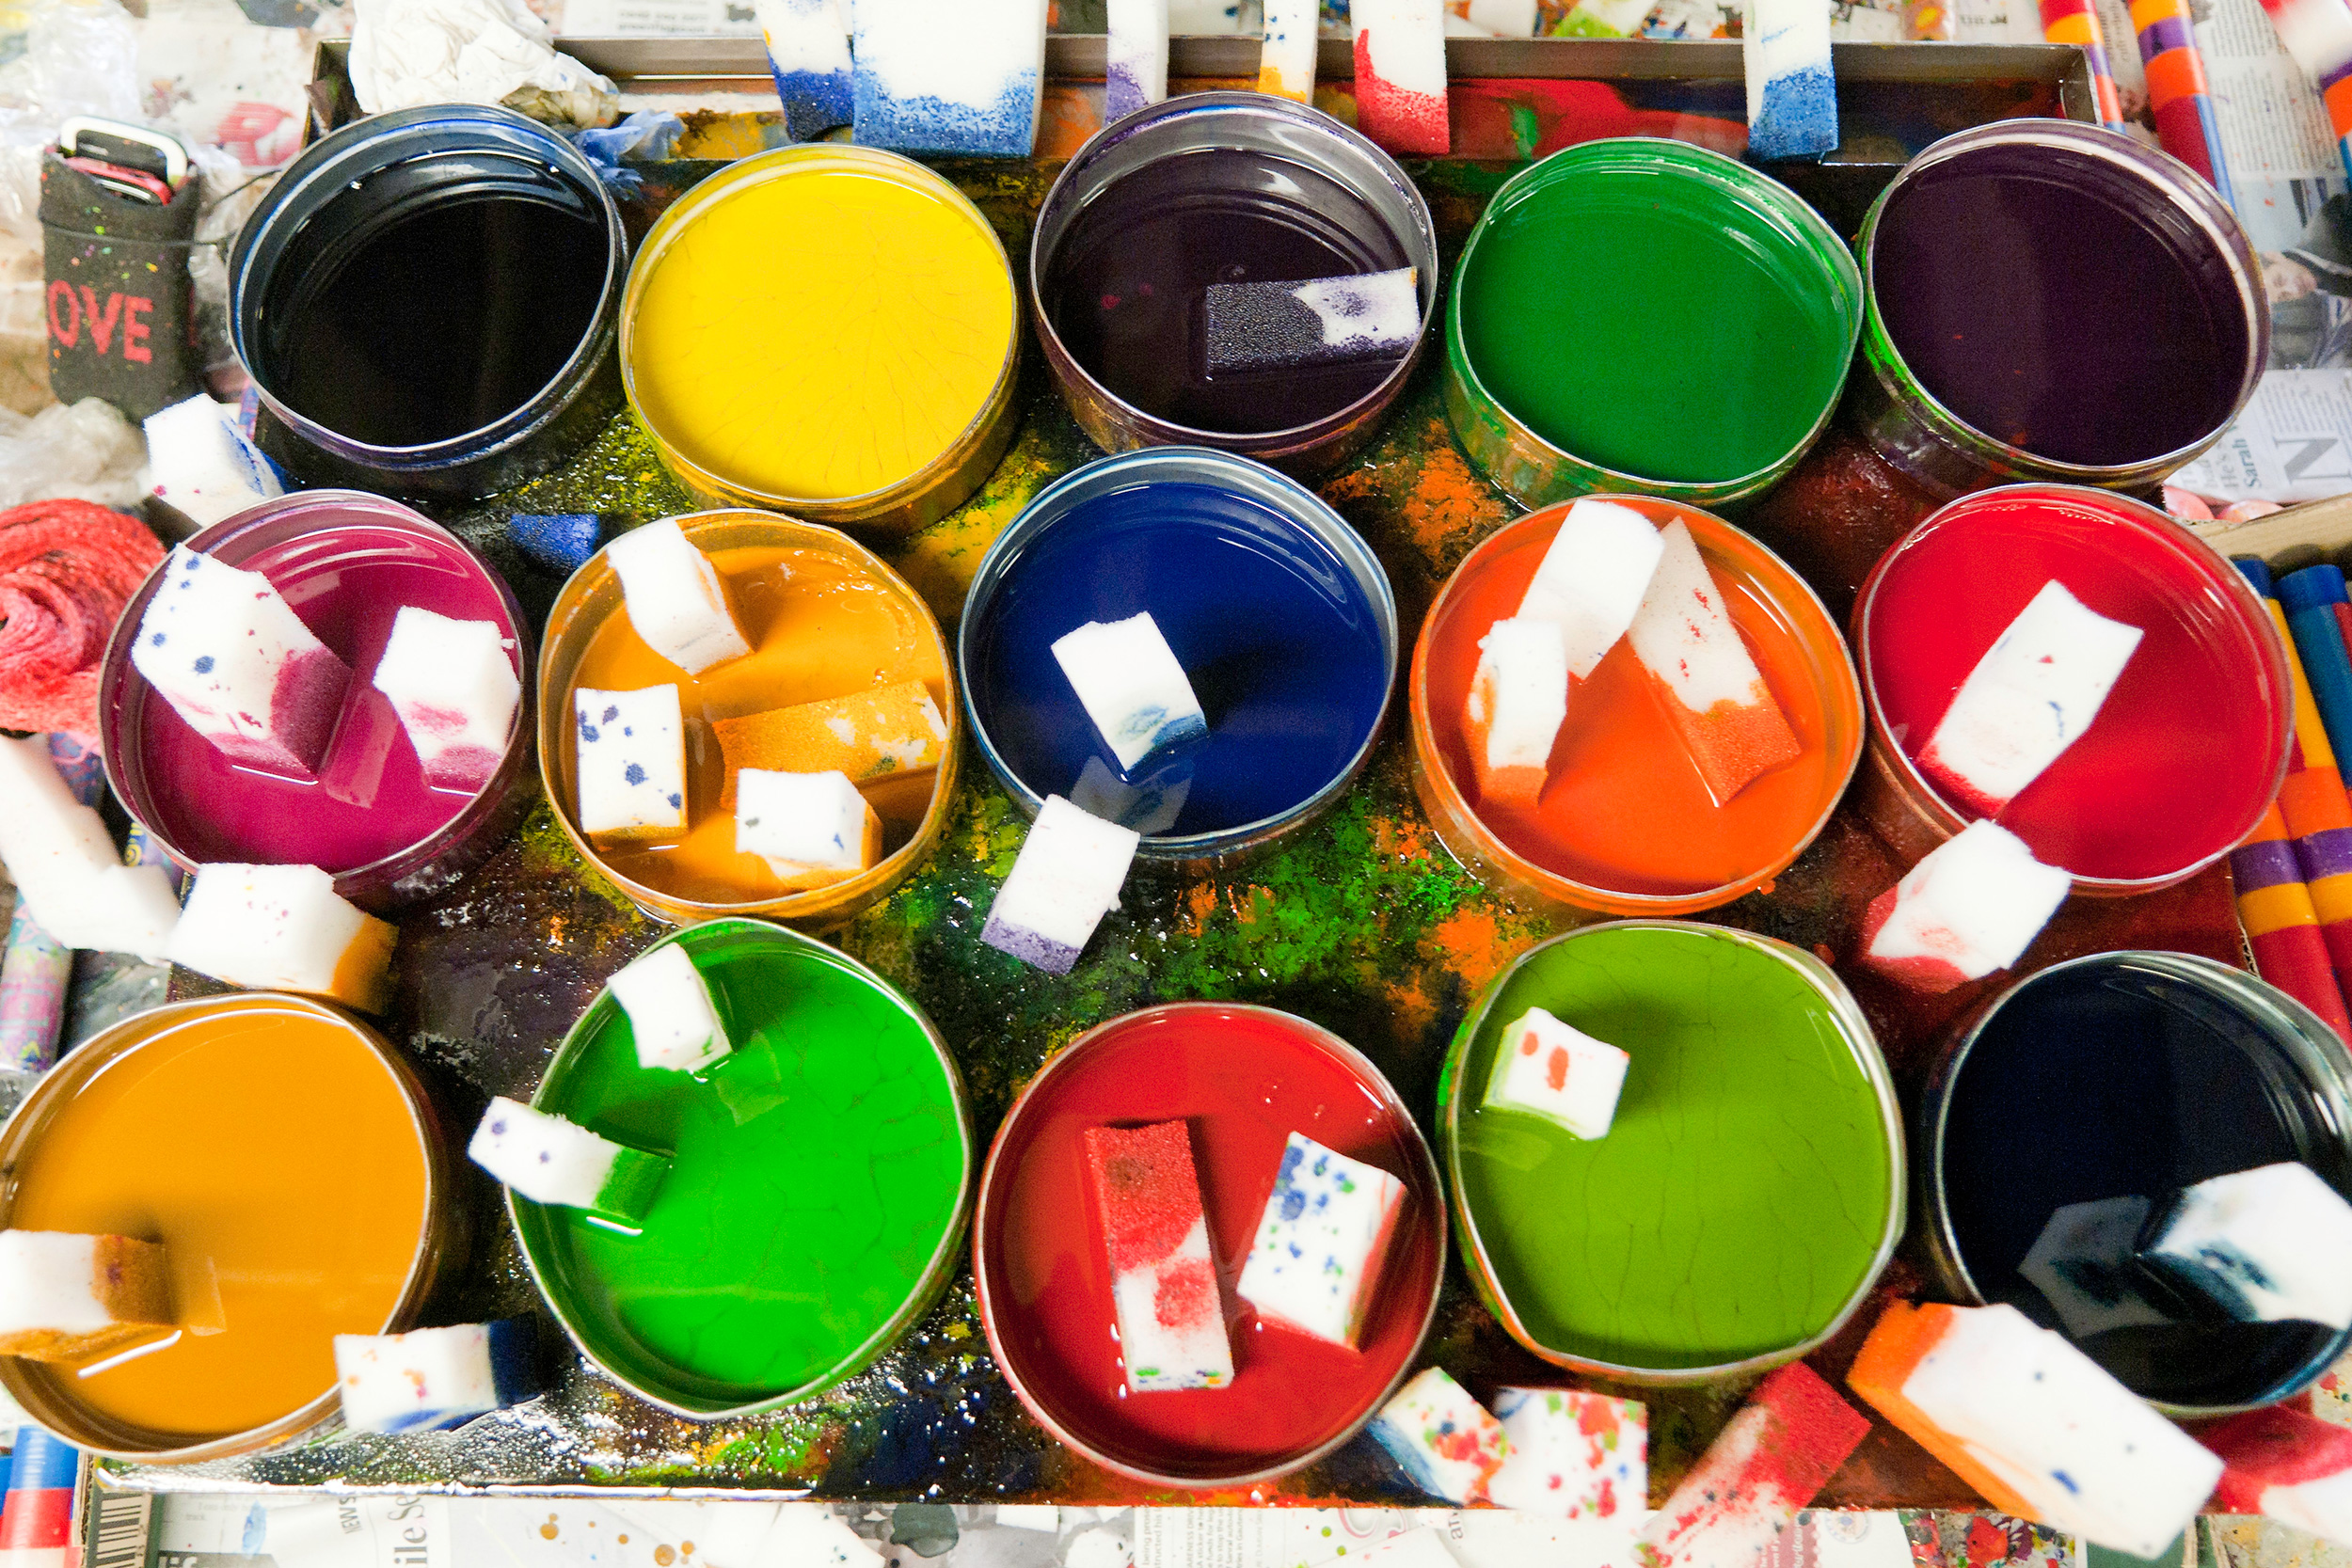 kapula-hand-painted-candles-colours-wax-paint-pots.jpg